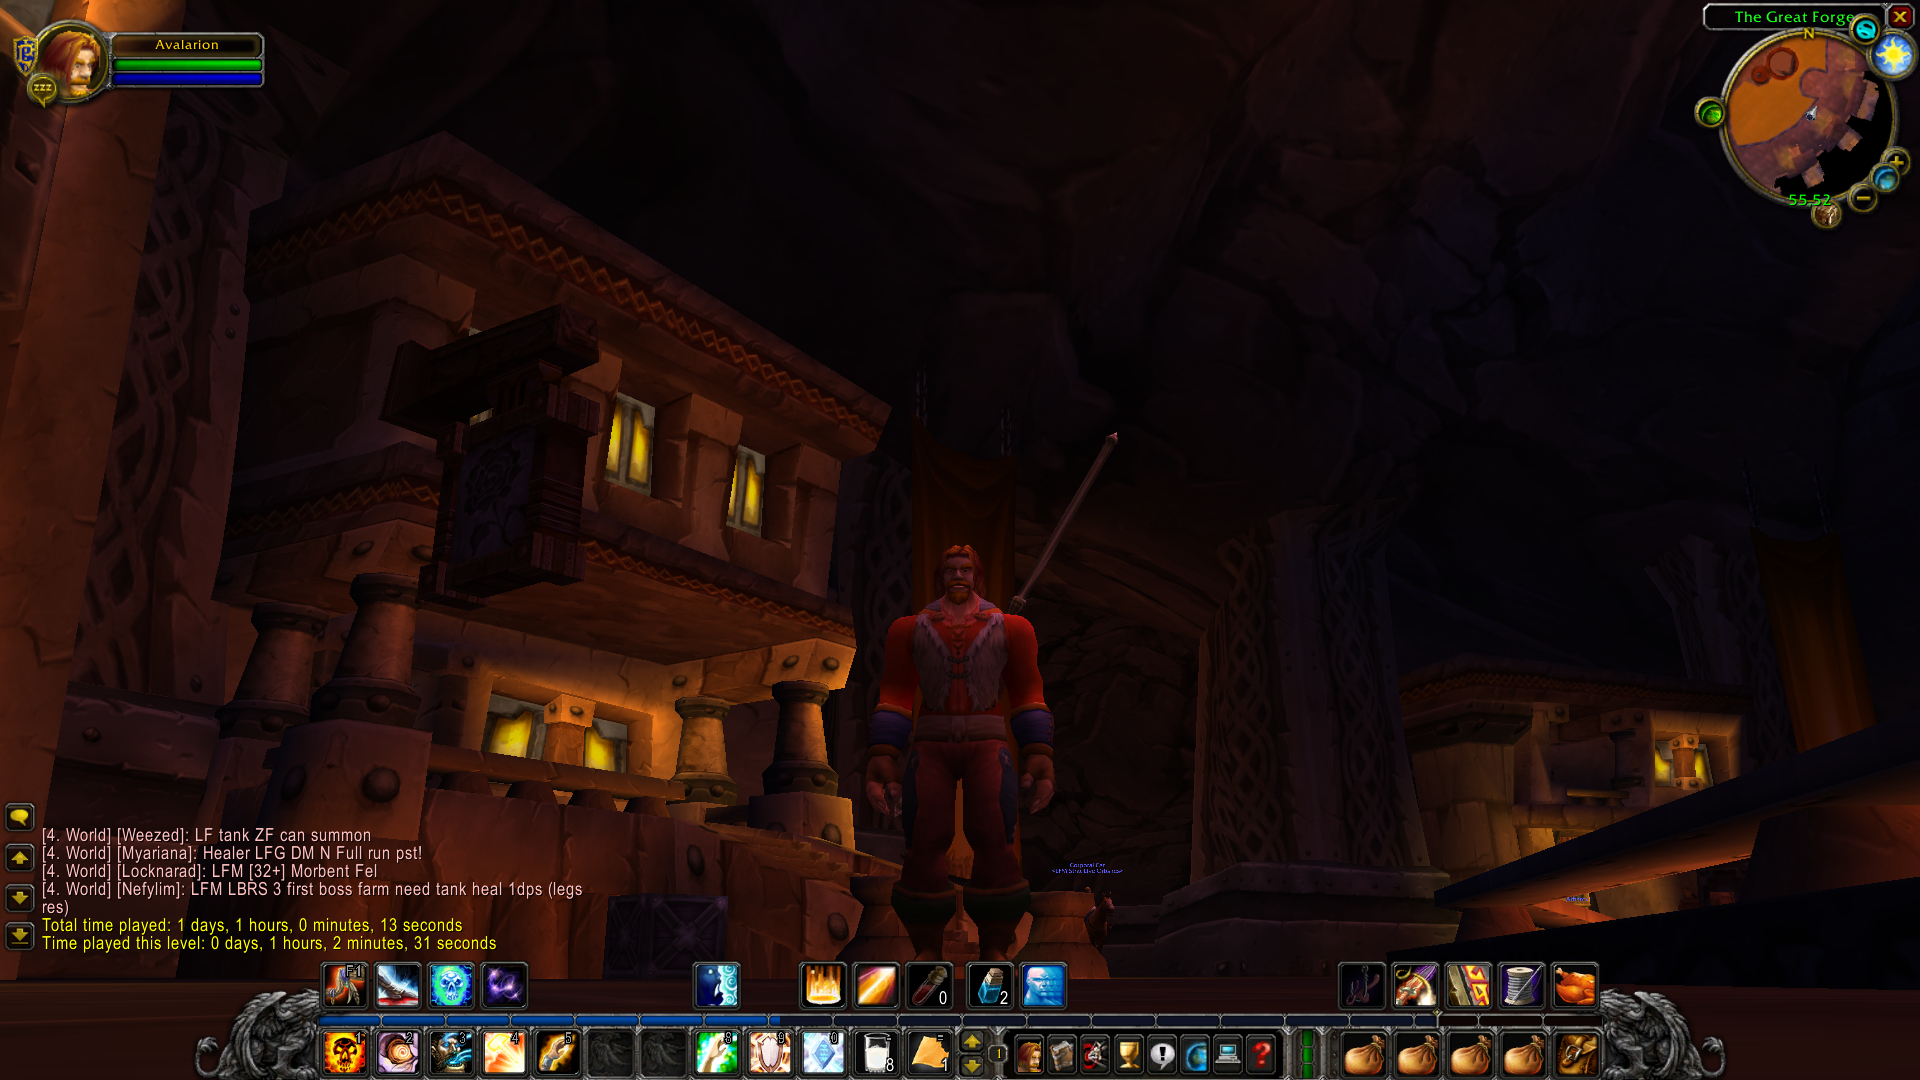 Avalarion in Ironforge